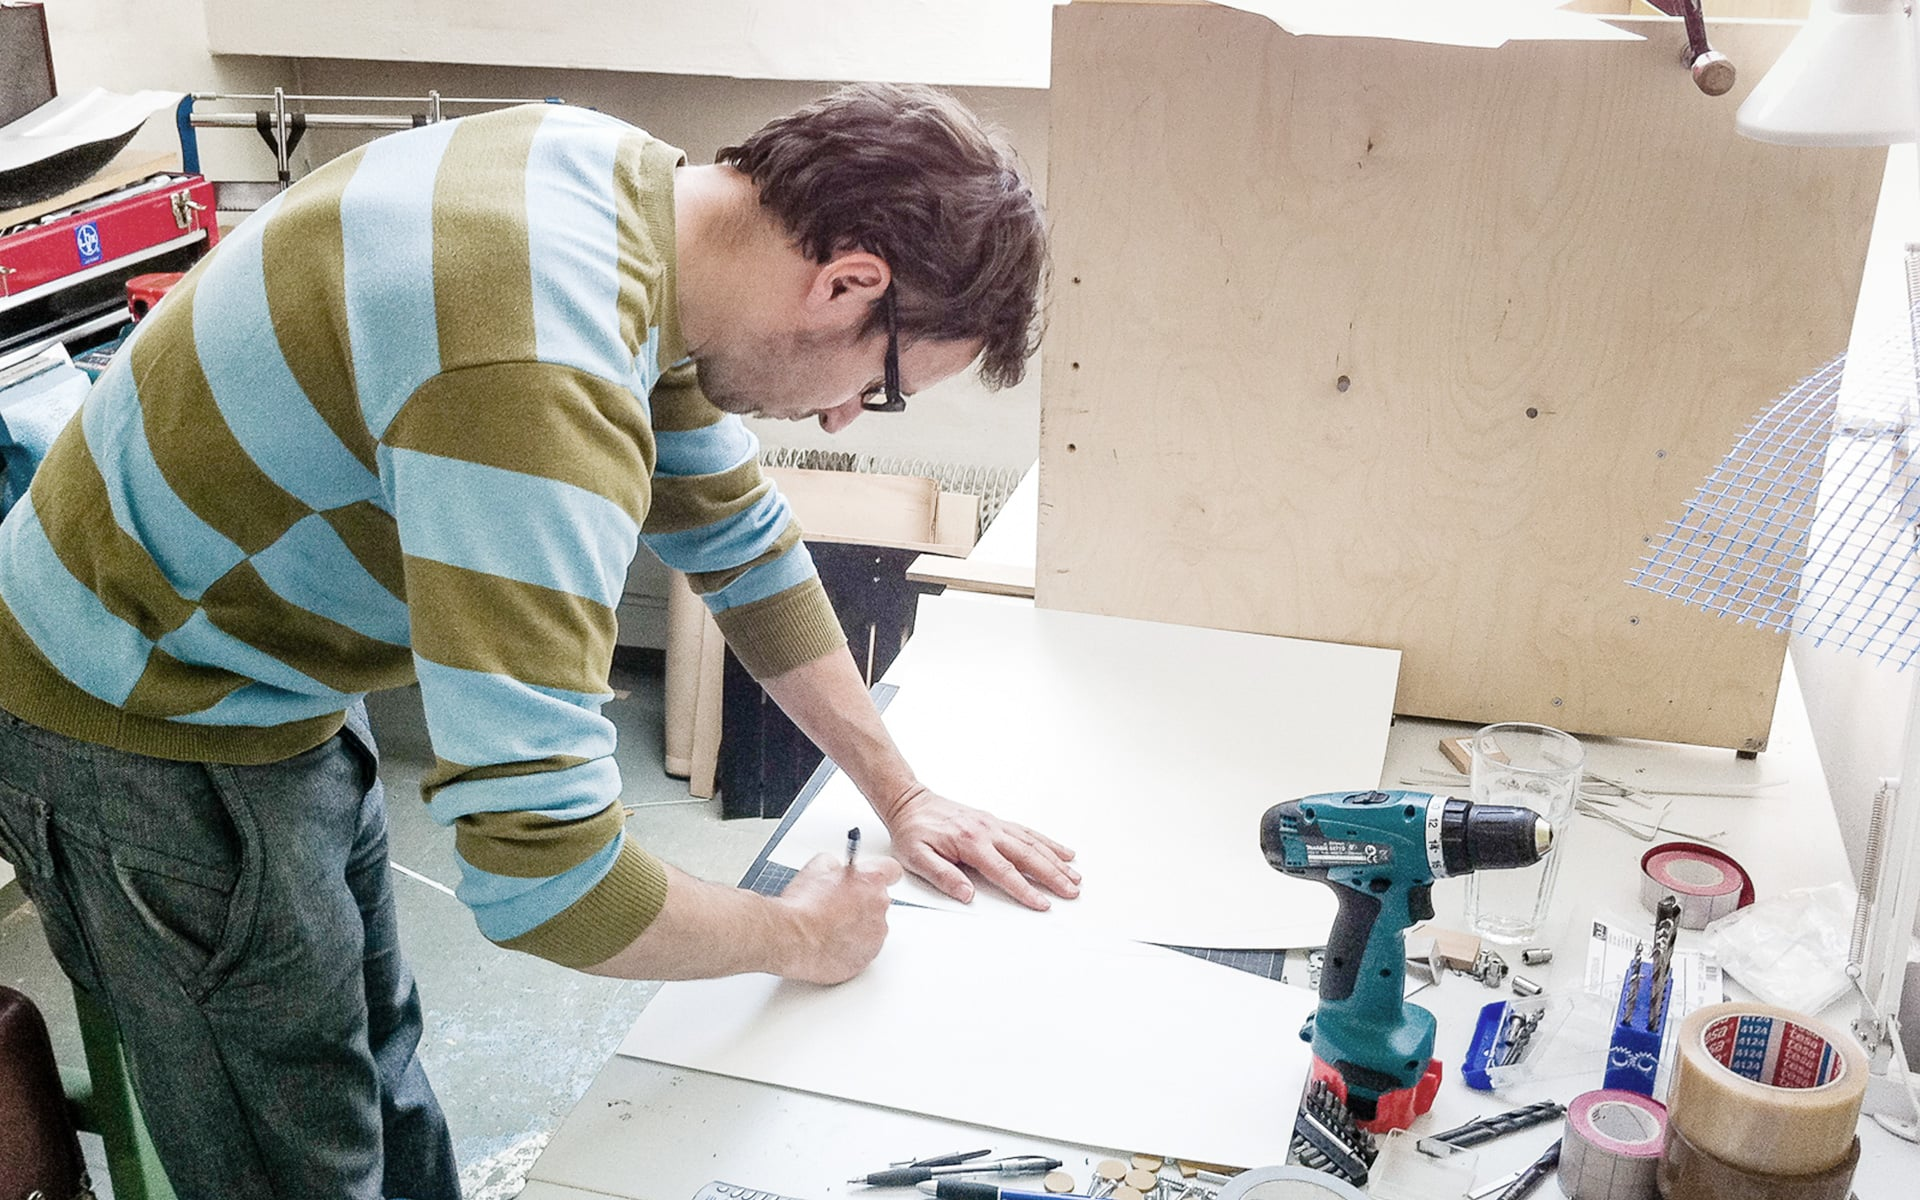 An ITO Design colleague works with a stencil for building a prototype